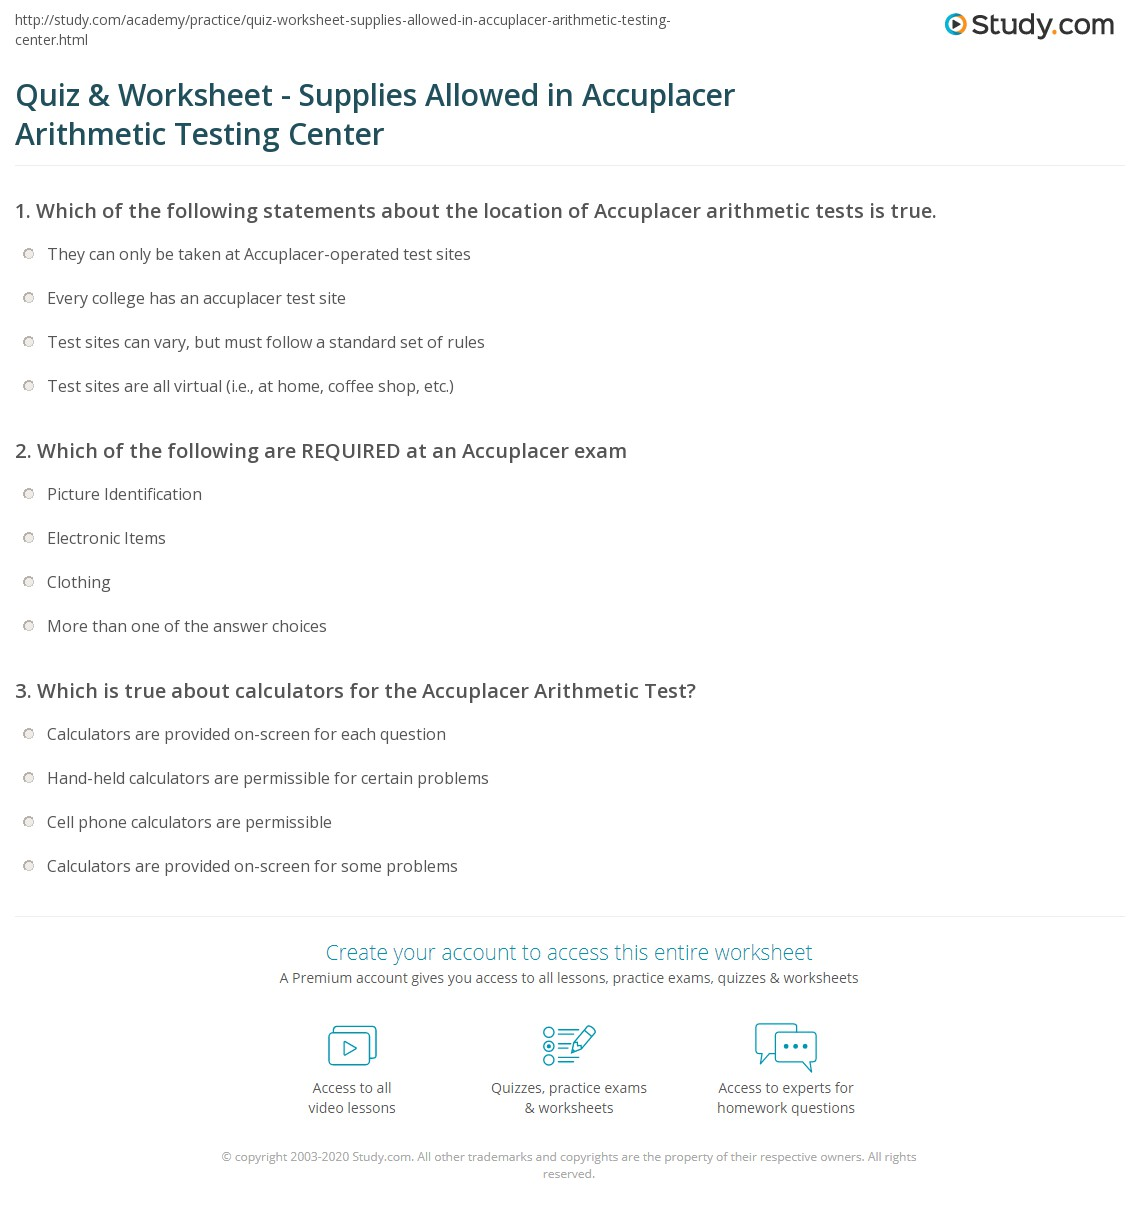 Quiz & Worksheet - Supplies Allowed in Accuplacer Arithmetic